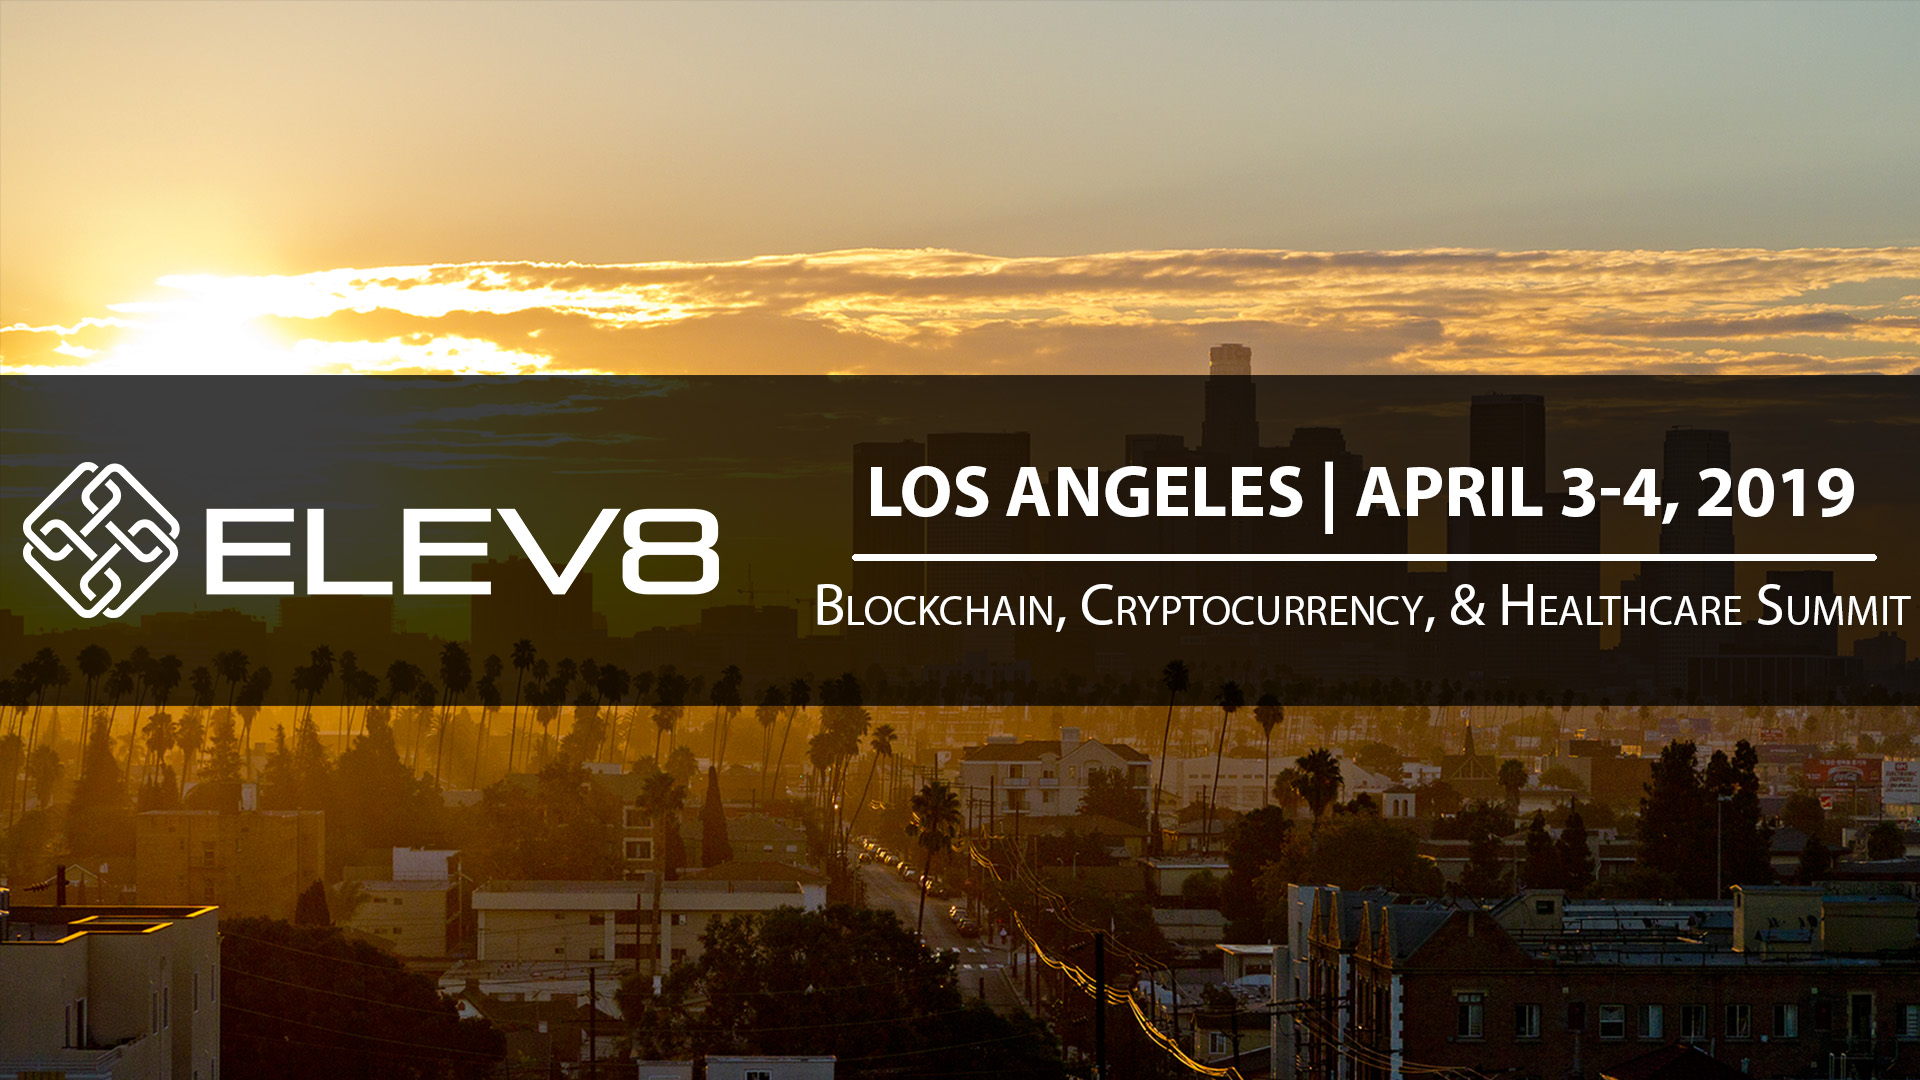 Los Angeles Blockchain Conference